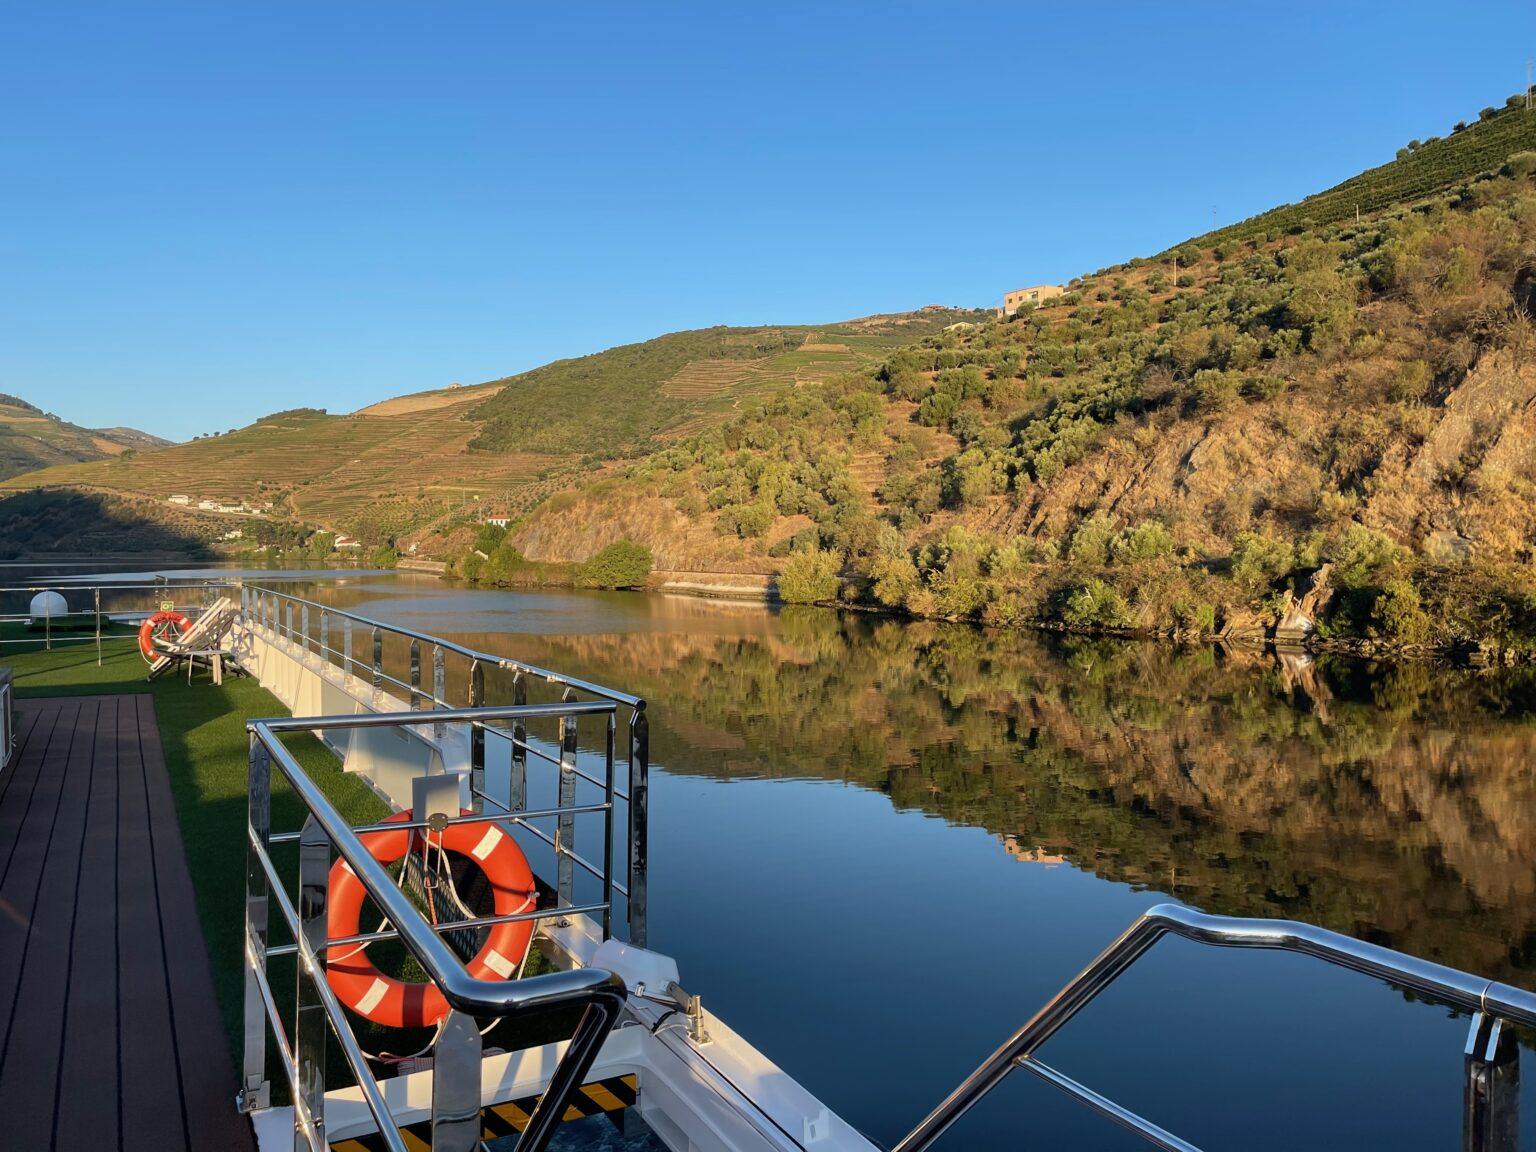 The scenery is never ugly on the Douro.